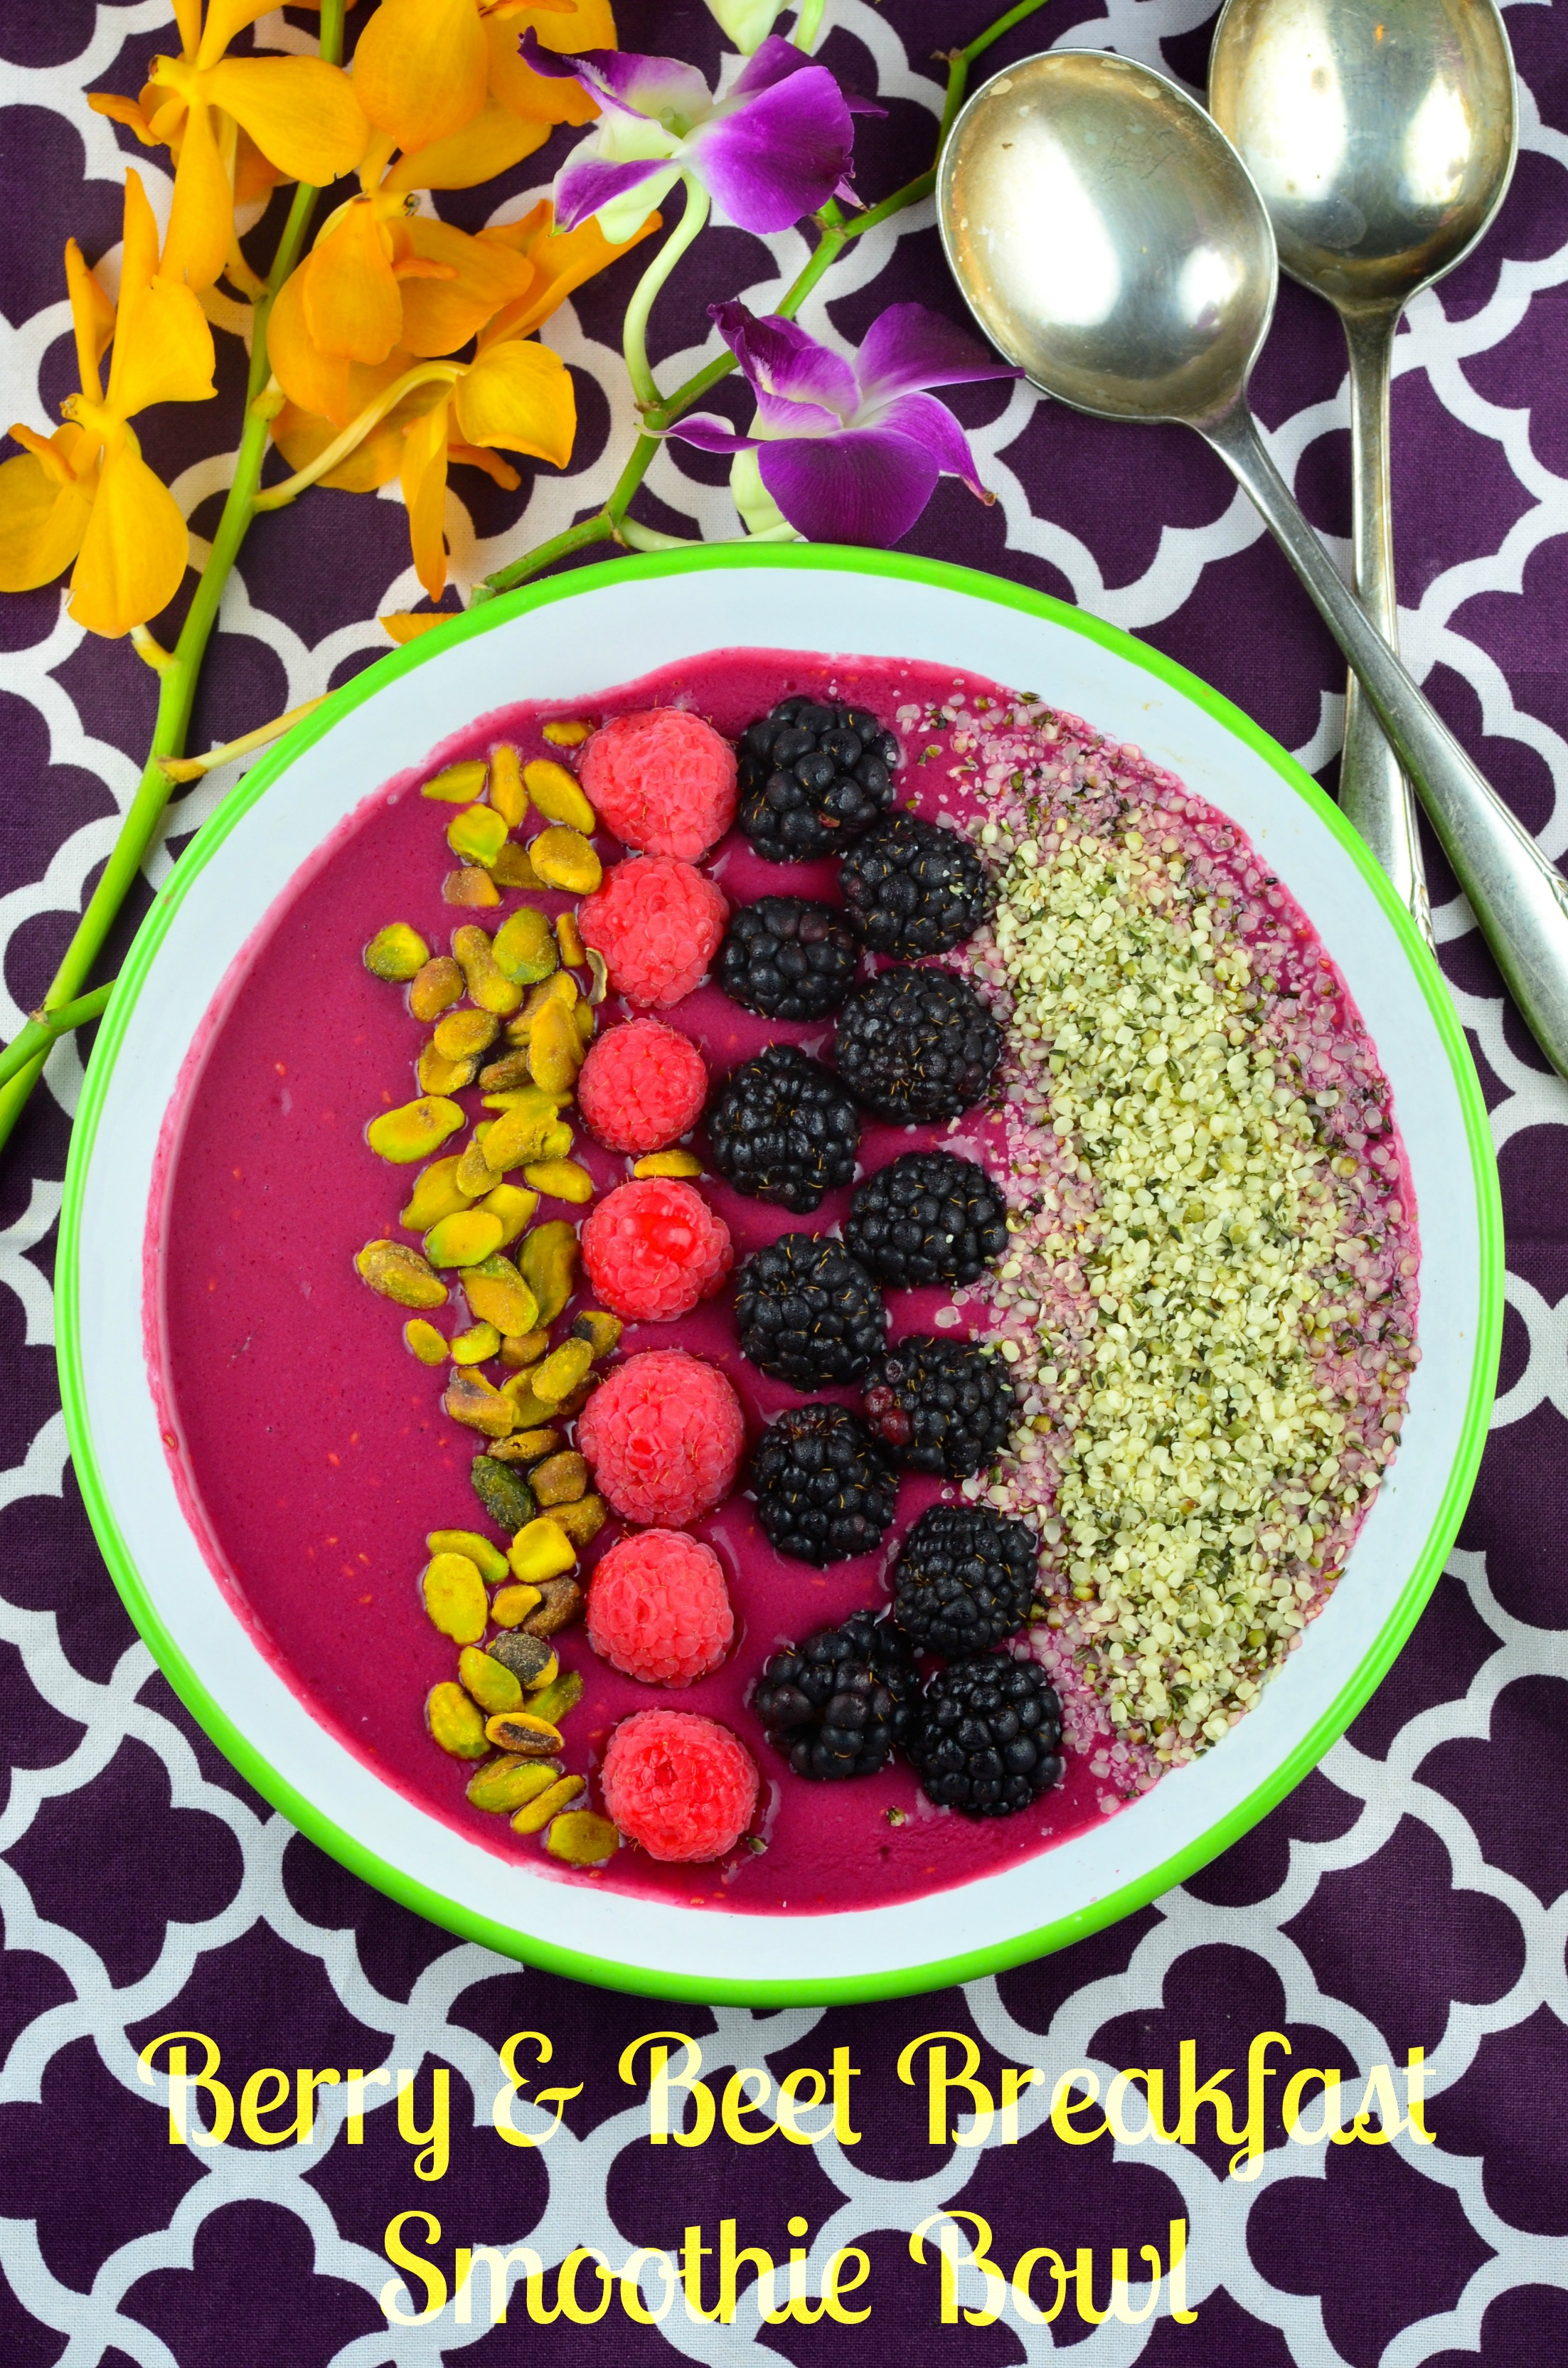 """Beet"" The Heat Breakfast Smoothie Bowl"